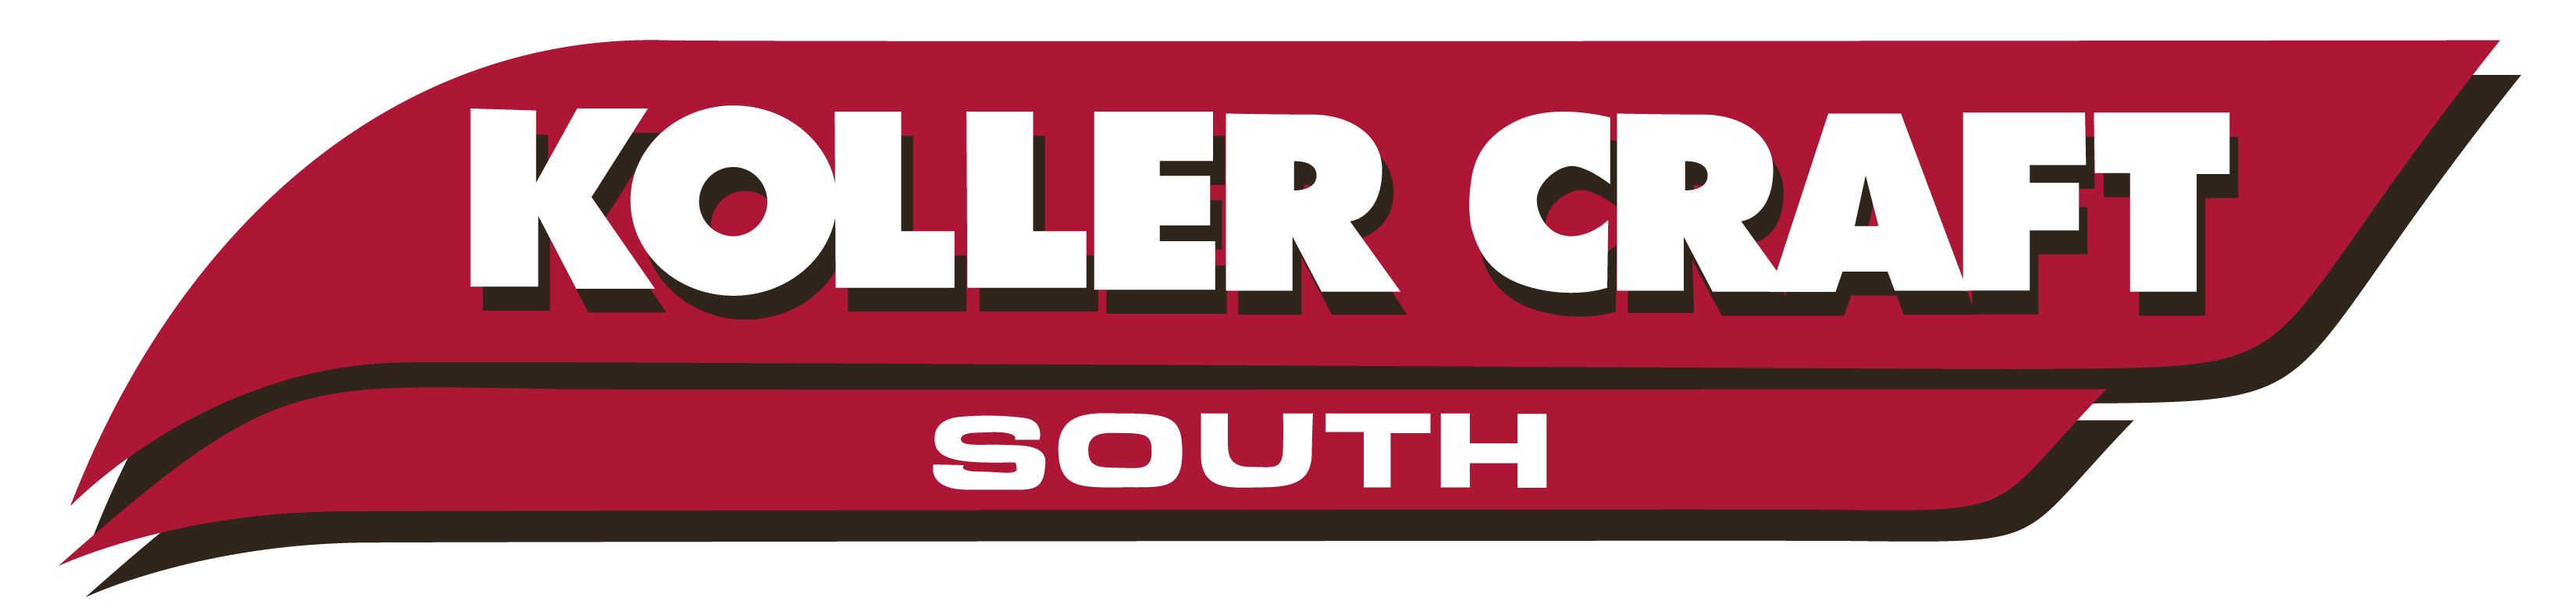 Koller Craft South